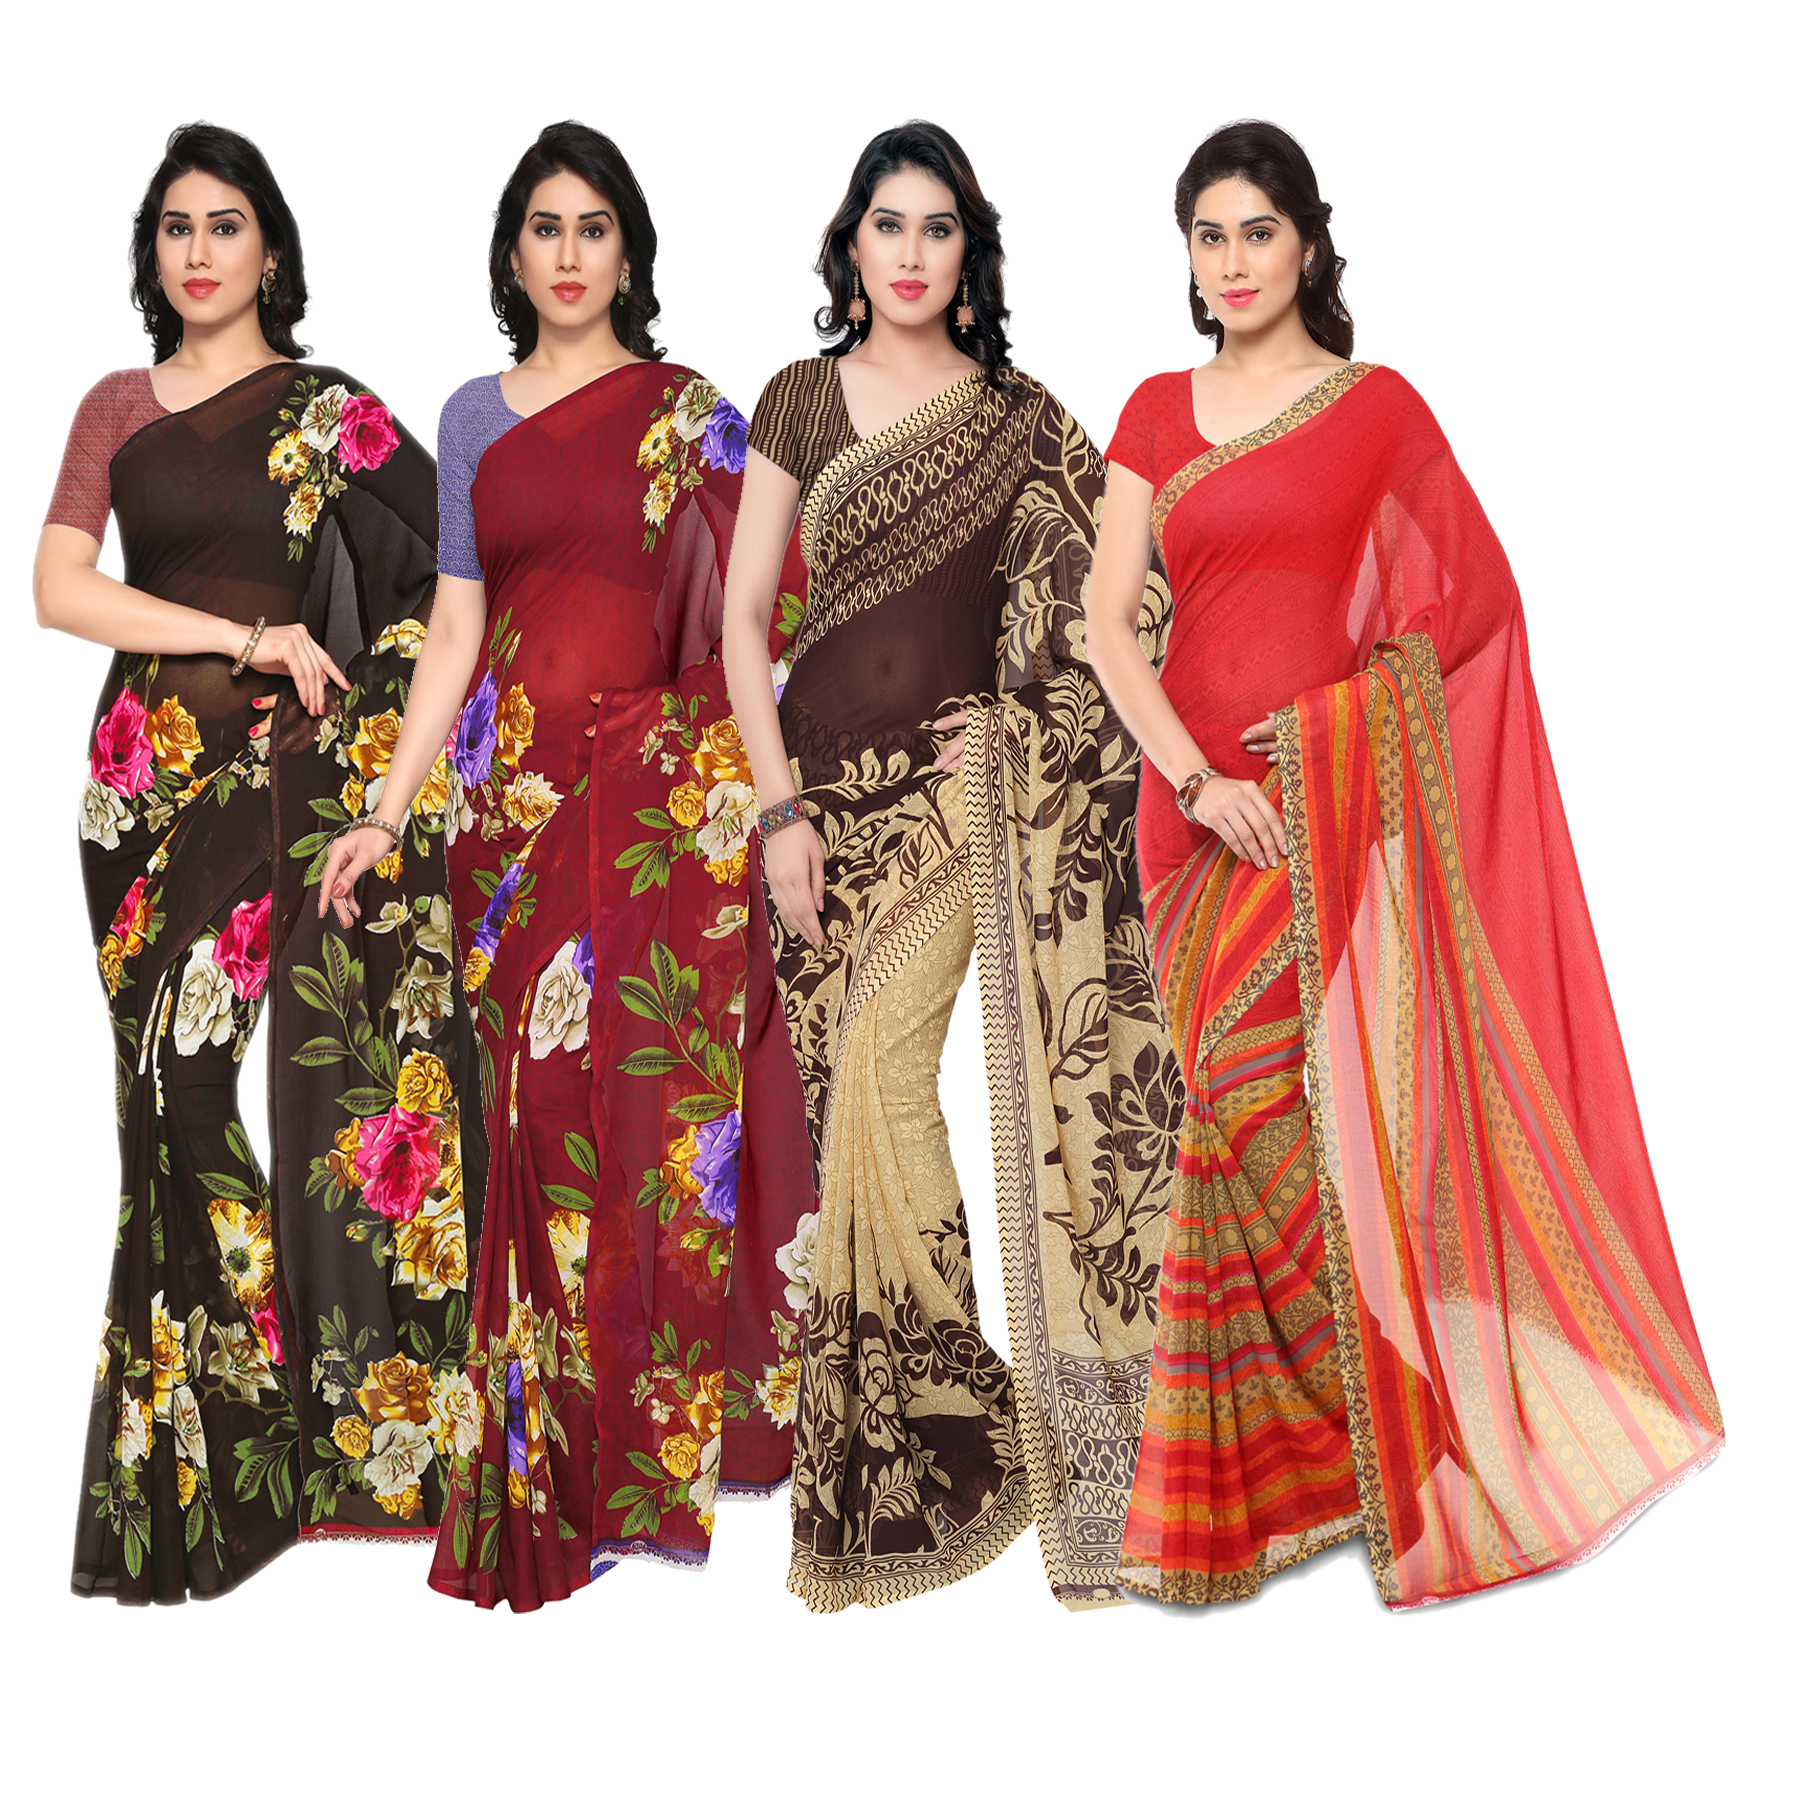 bd53a77f11b multicolor printed pack of 4 saree with blouse - Anand Saree - 2634148